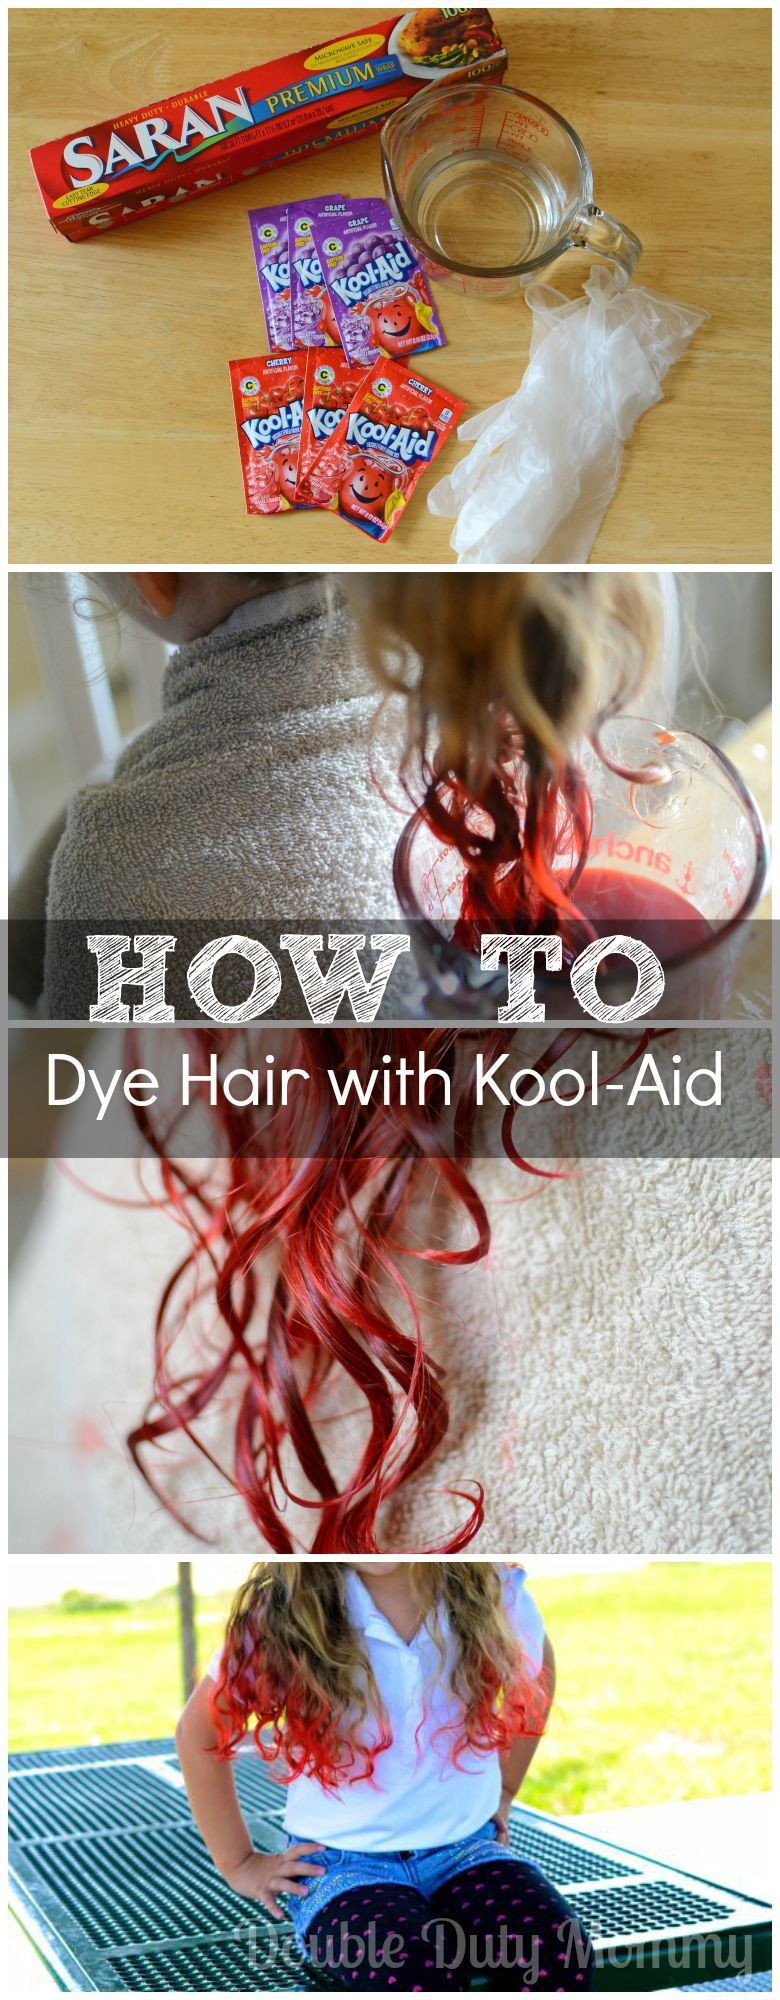 How to dye hair with kool aid great for last minute halloween how to dye hair with kool aid great for last minute halloween costumes geenschuldenfo Image collections